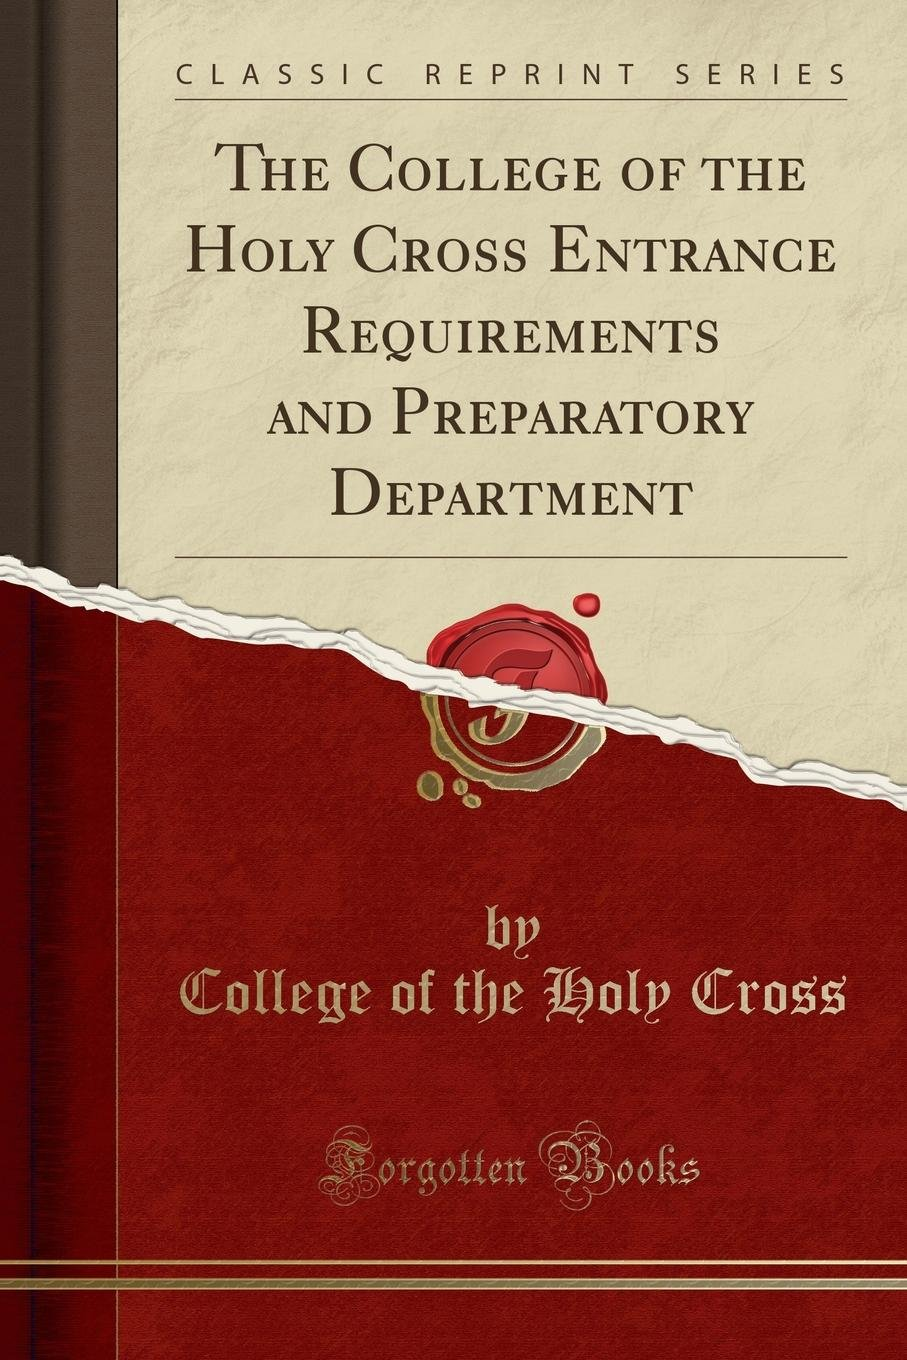 Download The College of the Holy Cross Entrance Requirements and Preparatory Department (Classic Reprint) ebook